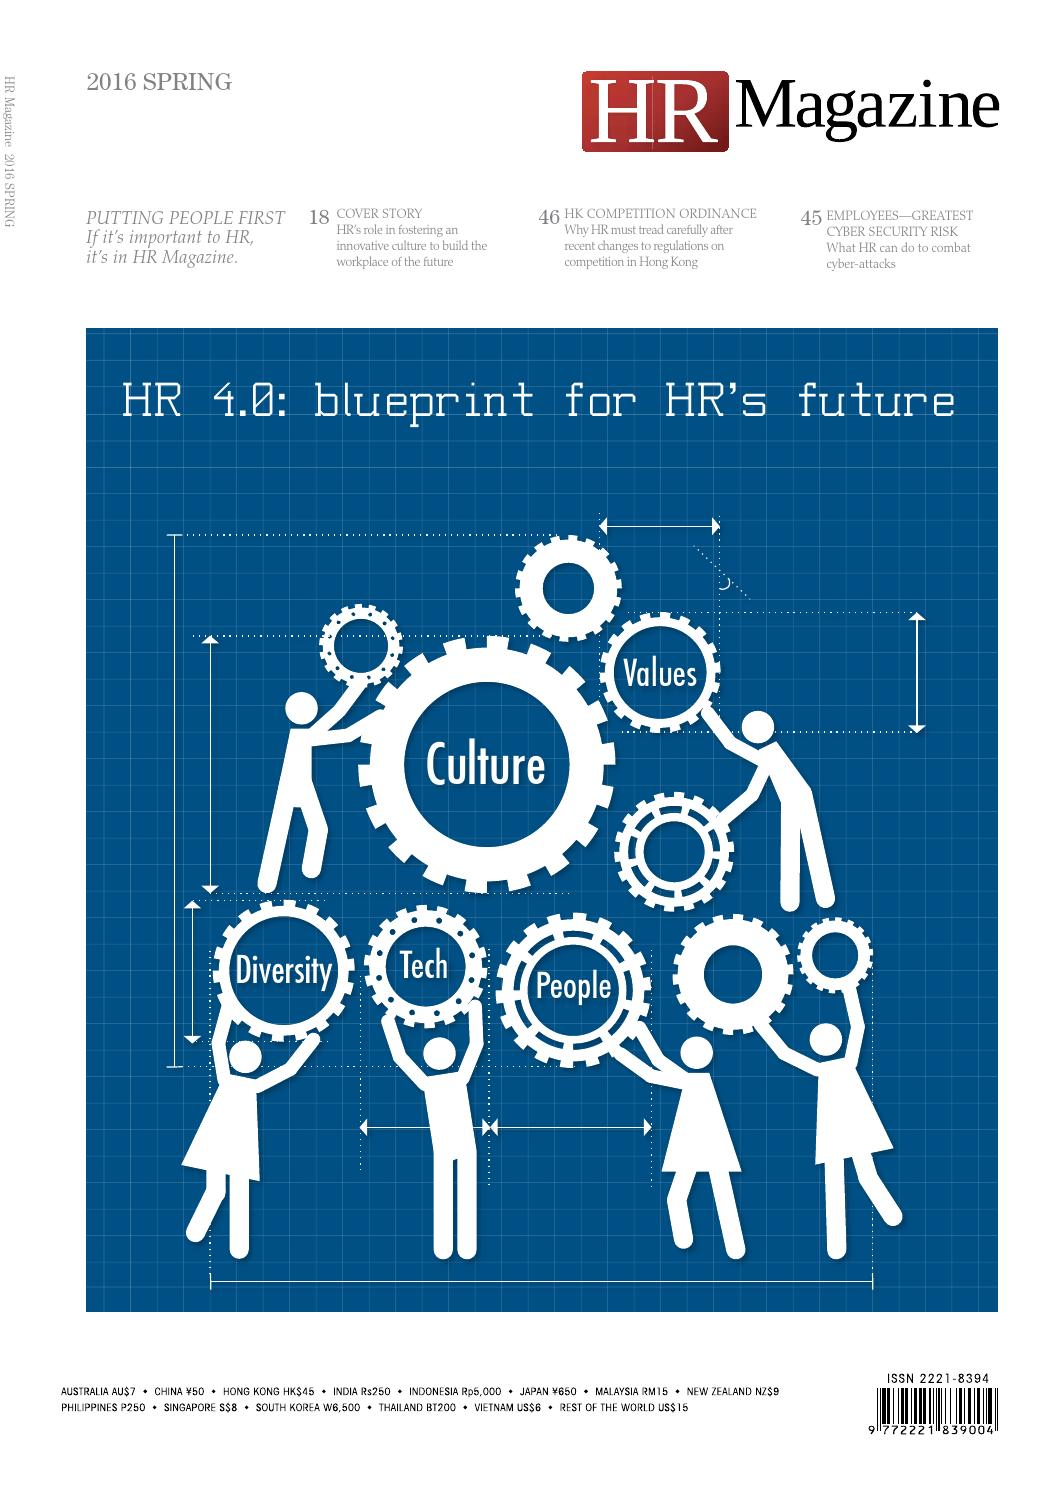 developing as a hr practitioner essay The role of human resource management resulting in a roadmap or pathway for human resource practitioners to follow who wish to contribute to the achievement of their hr leaders are developing and implementing incentive and appraisal systems.